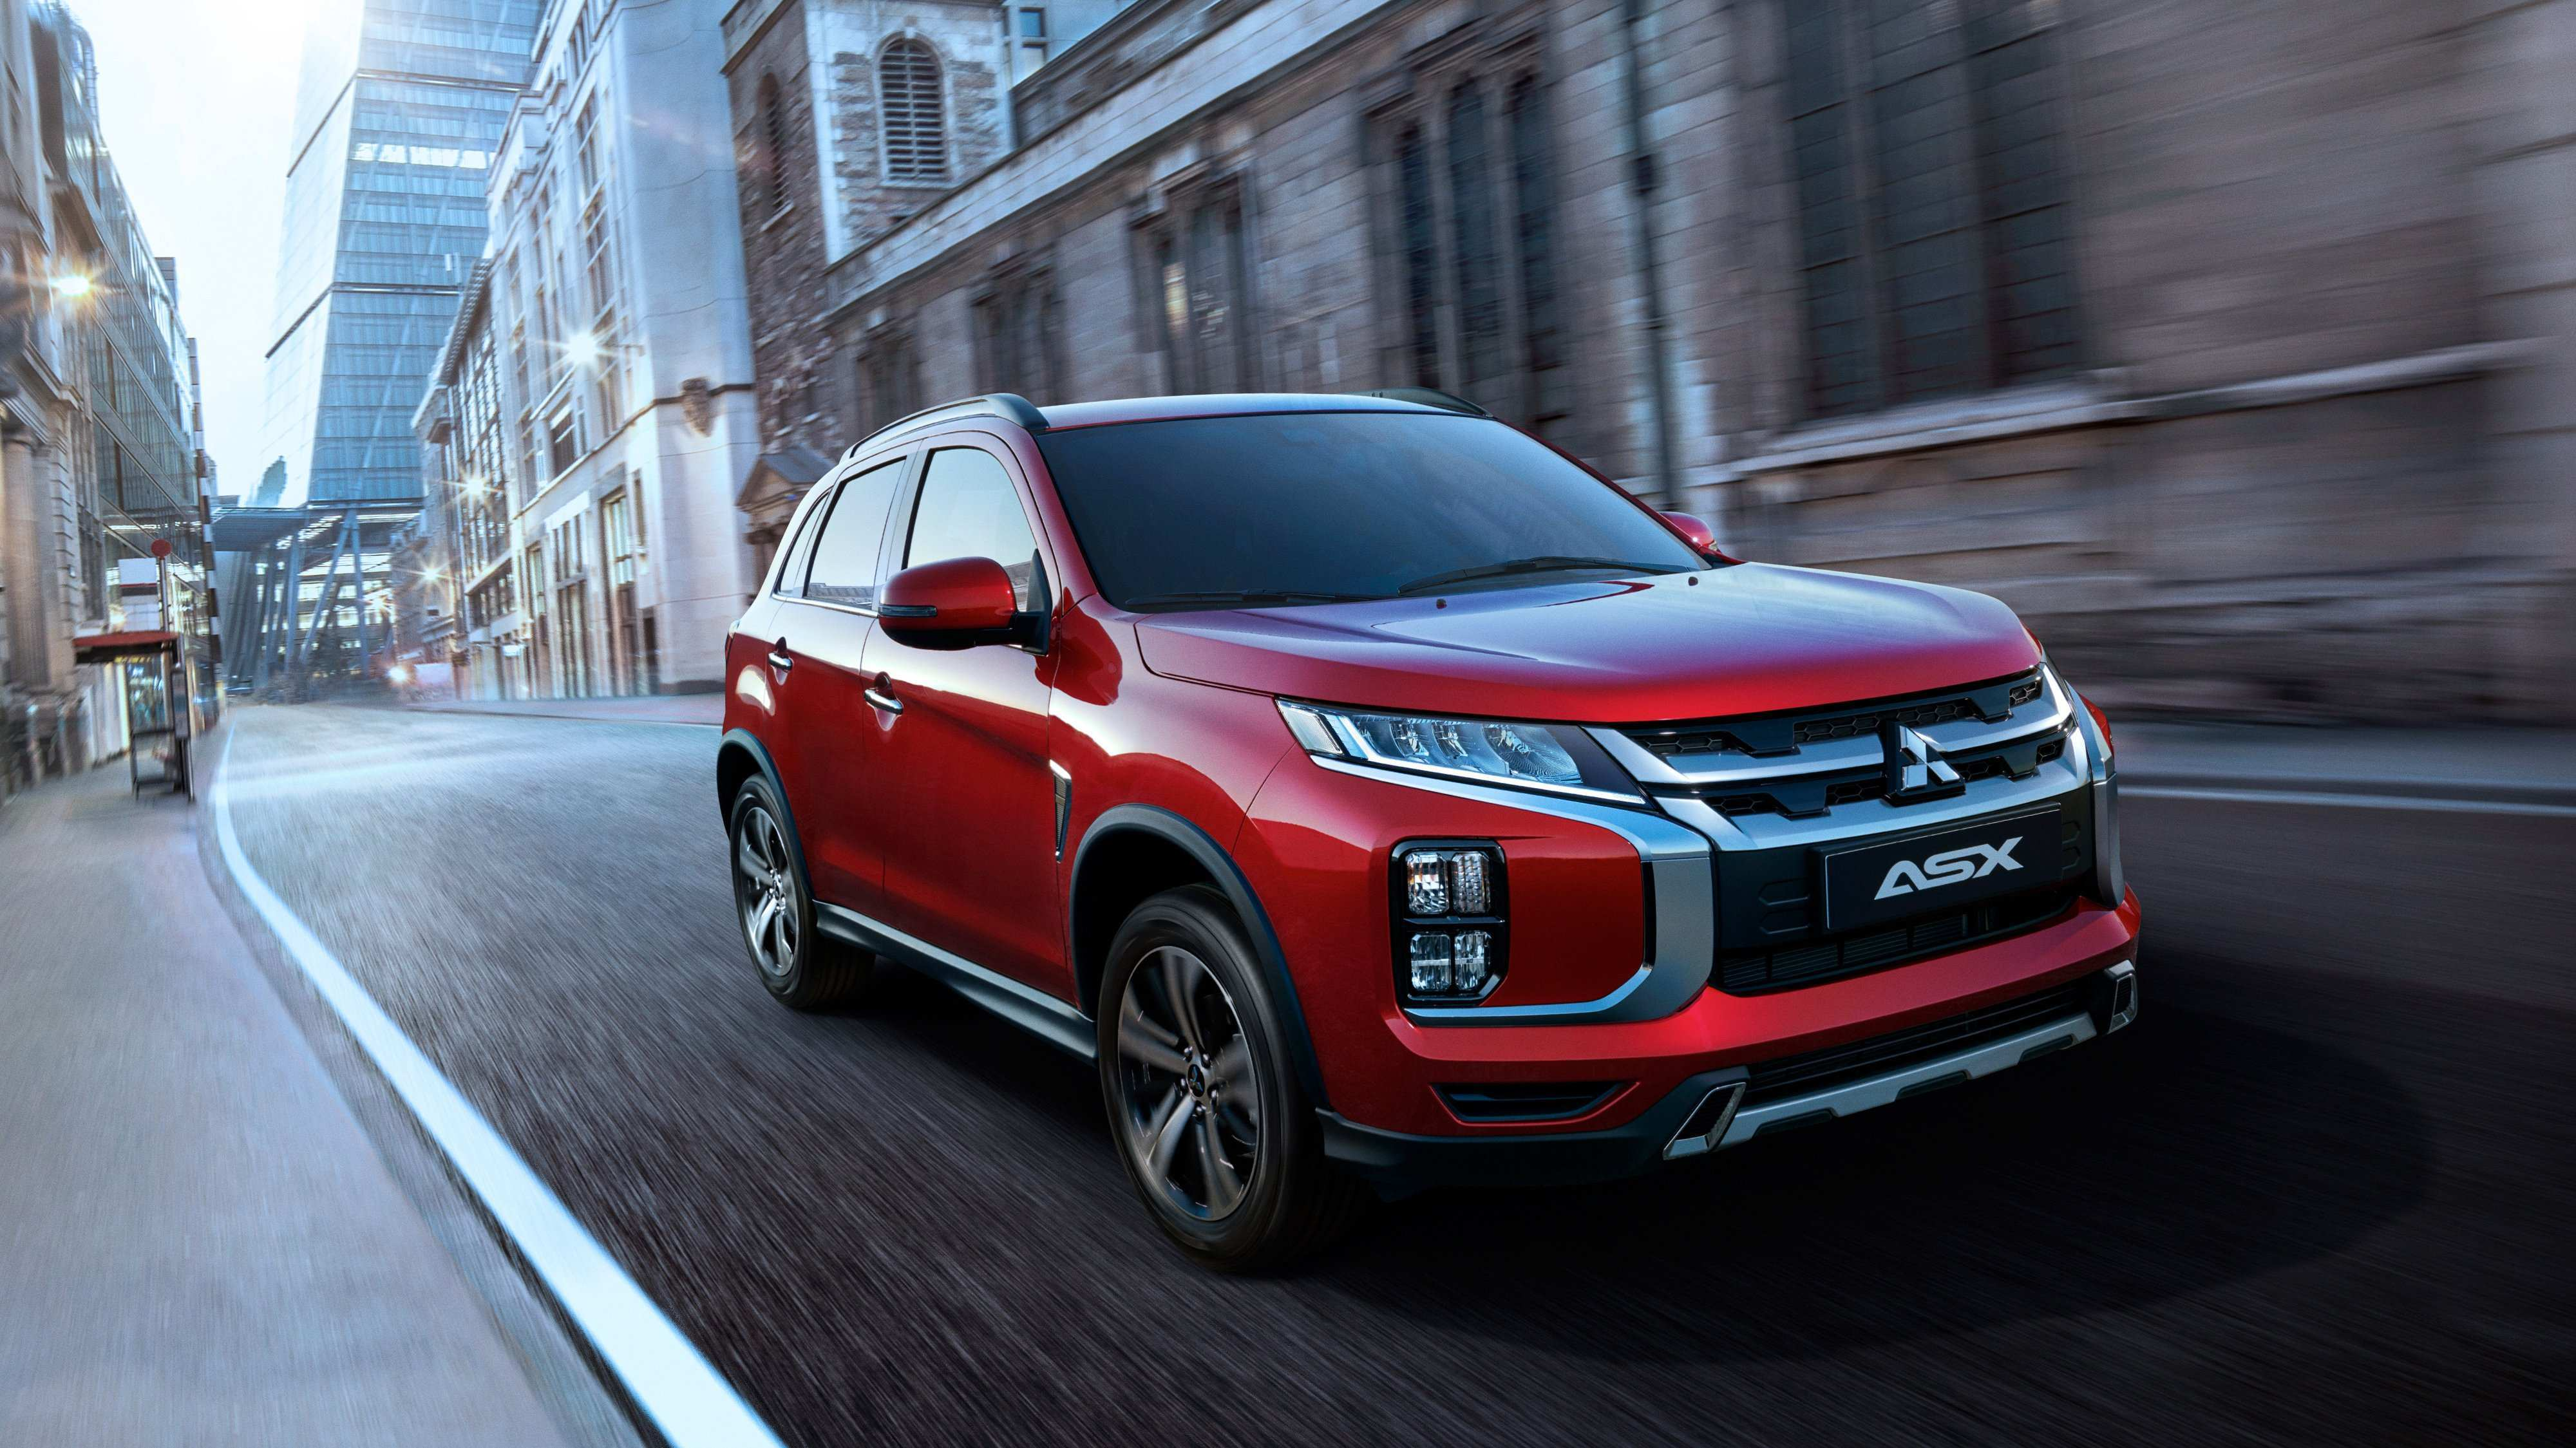 40 The Best Mitsubishi New Cars 2020 Price And Review